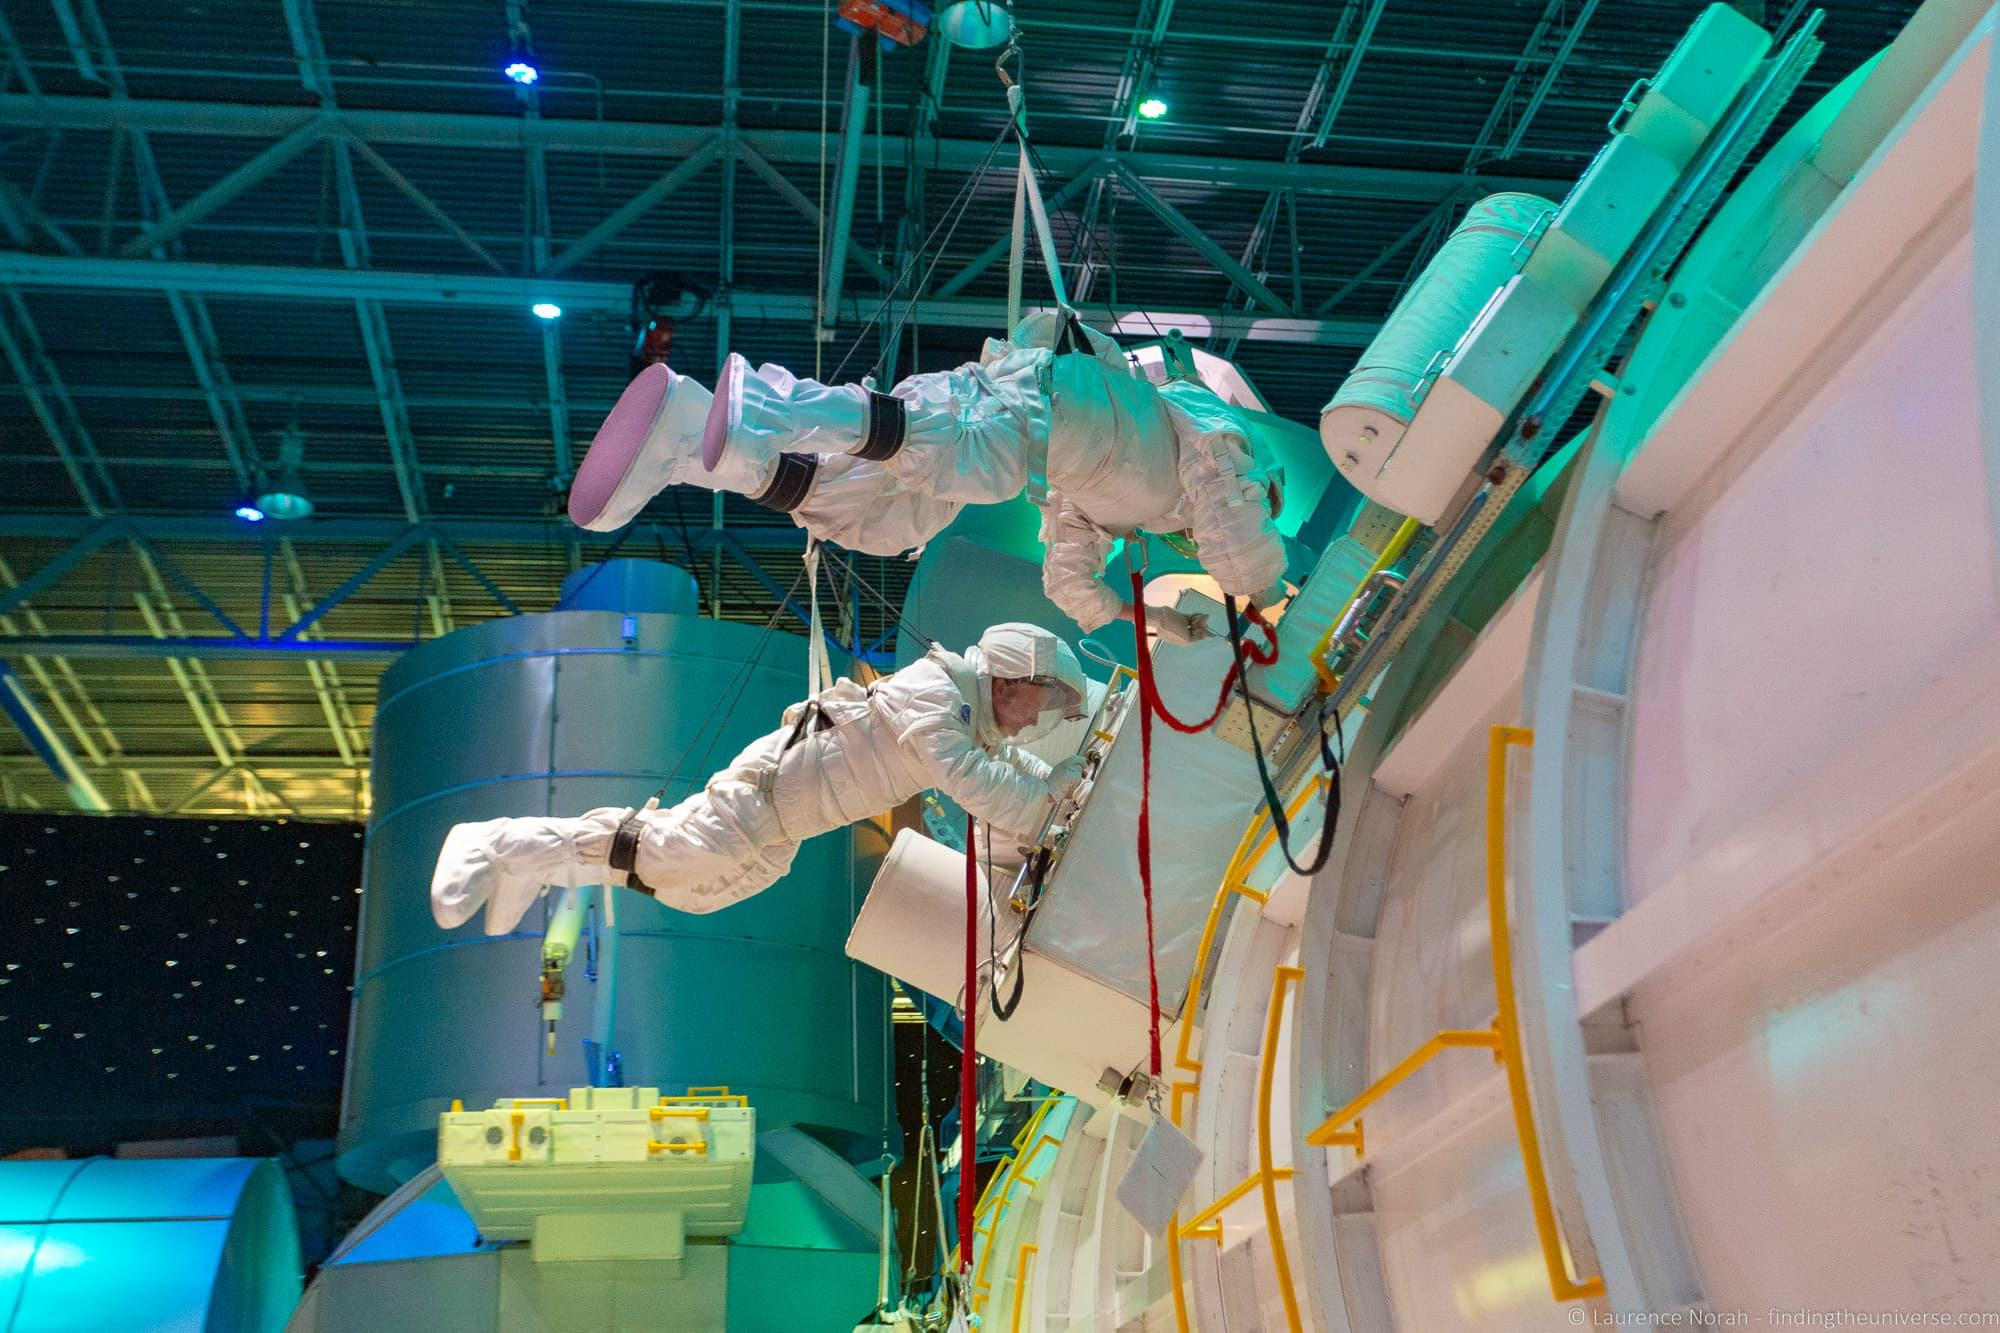 Space Camp EVA experience